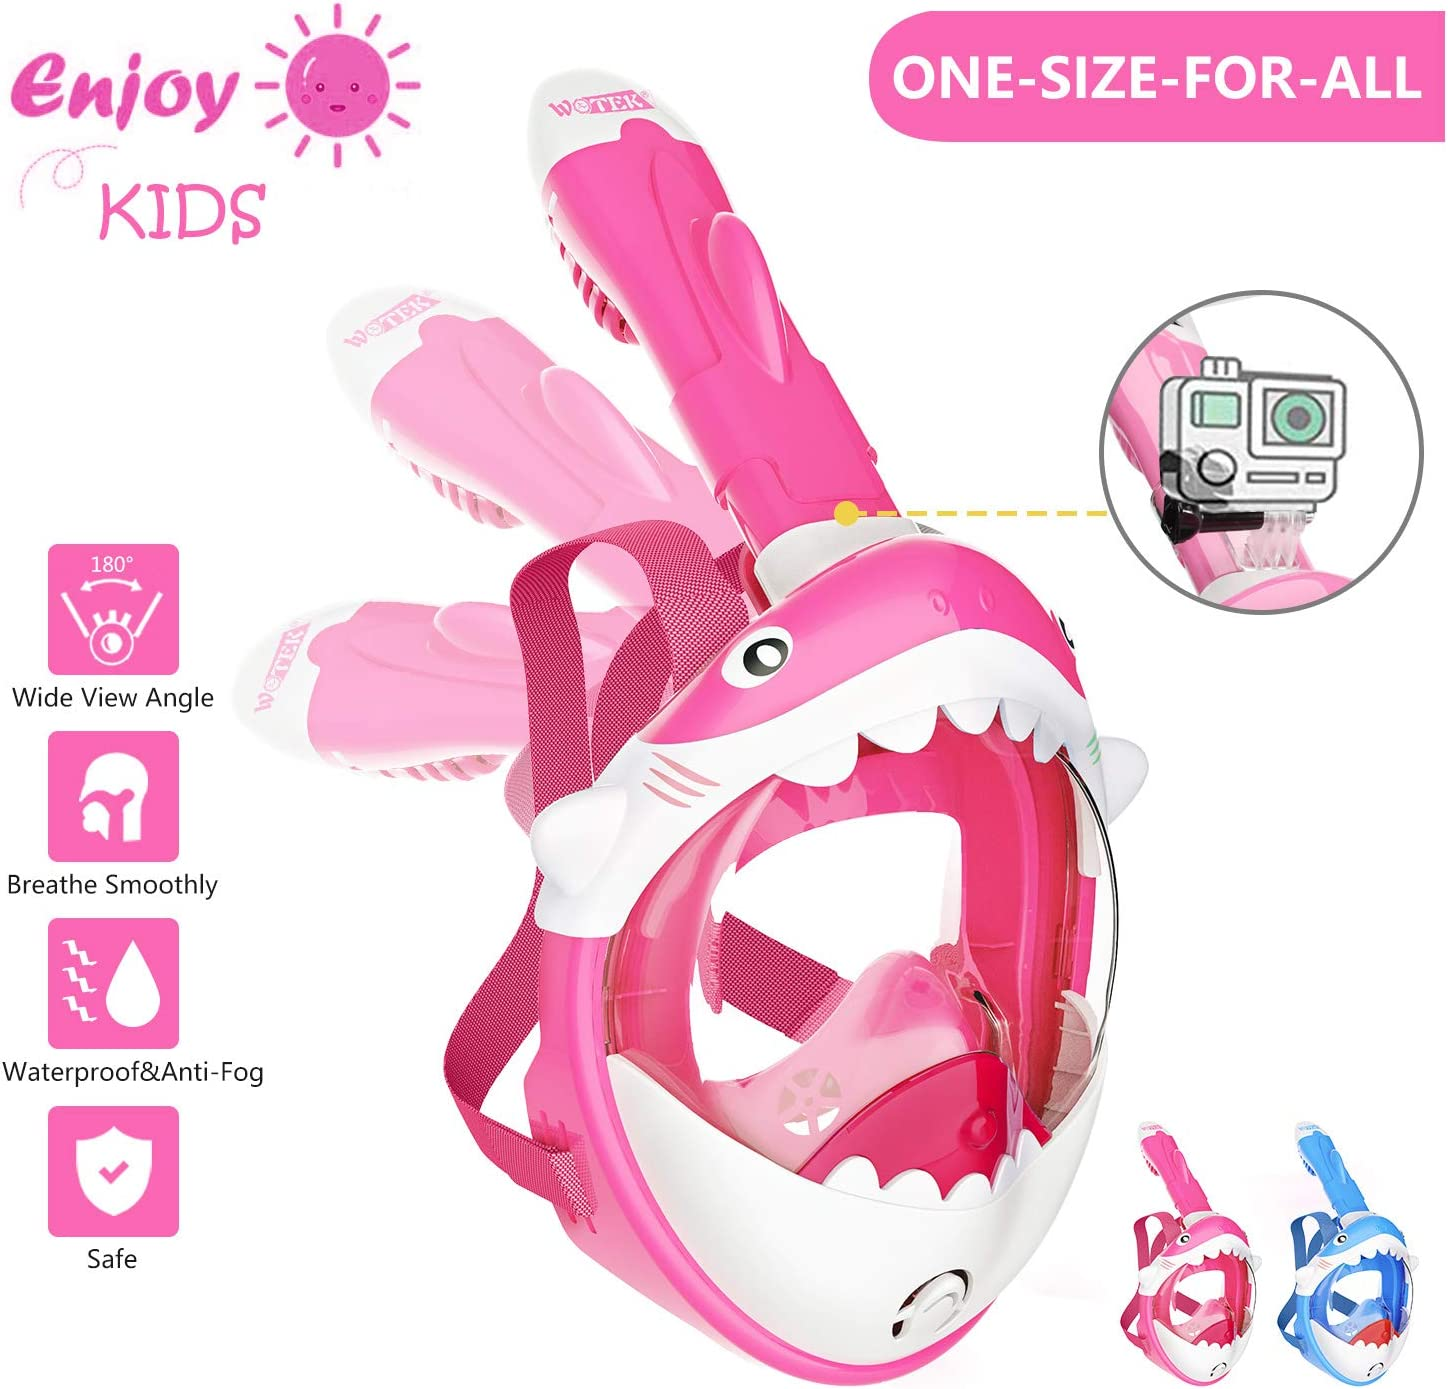 Childrens Snorkelling Mask Full Face-180/° HD View Easybreath Snorkel Mask with Shark Design and Detachable Camera Mount Children Snorkel Set with Anti-Fog and Anti-Leak design for 4-10 years Children